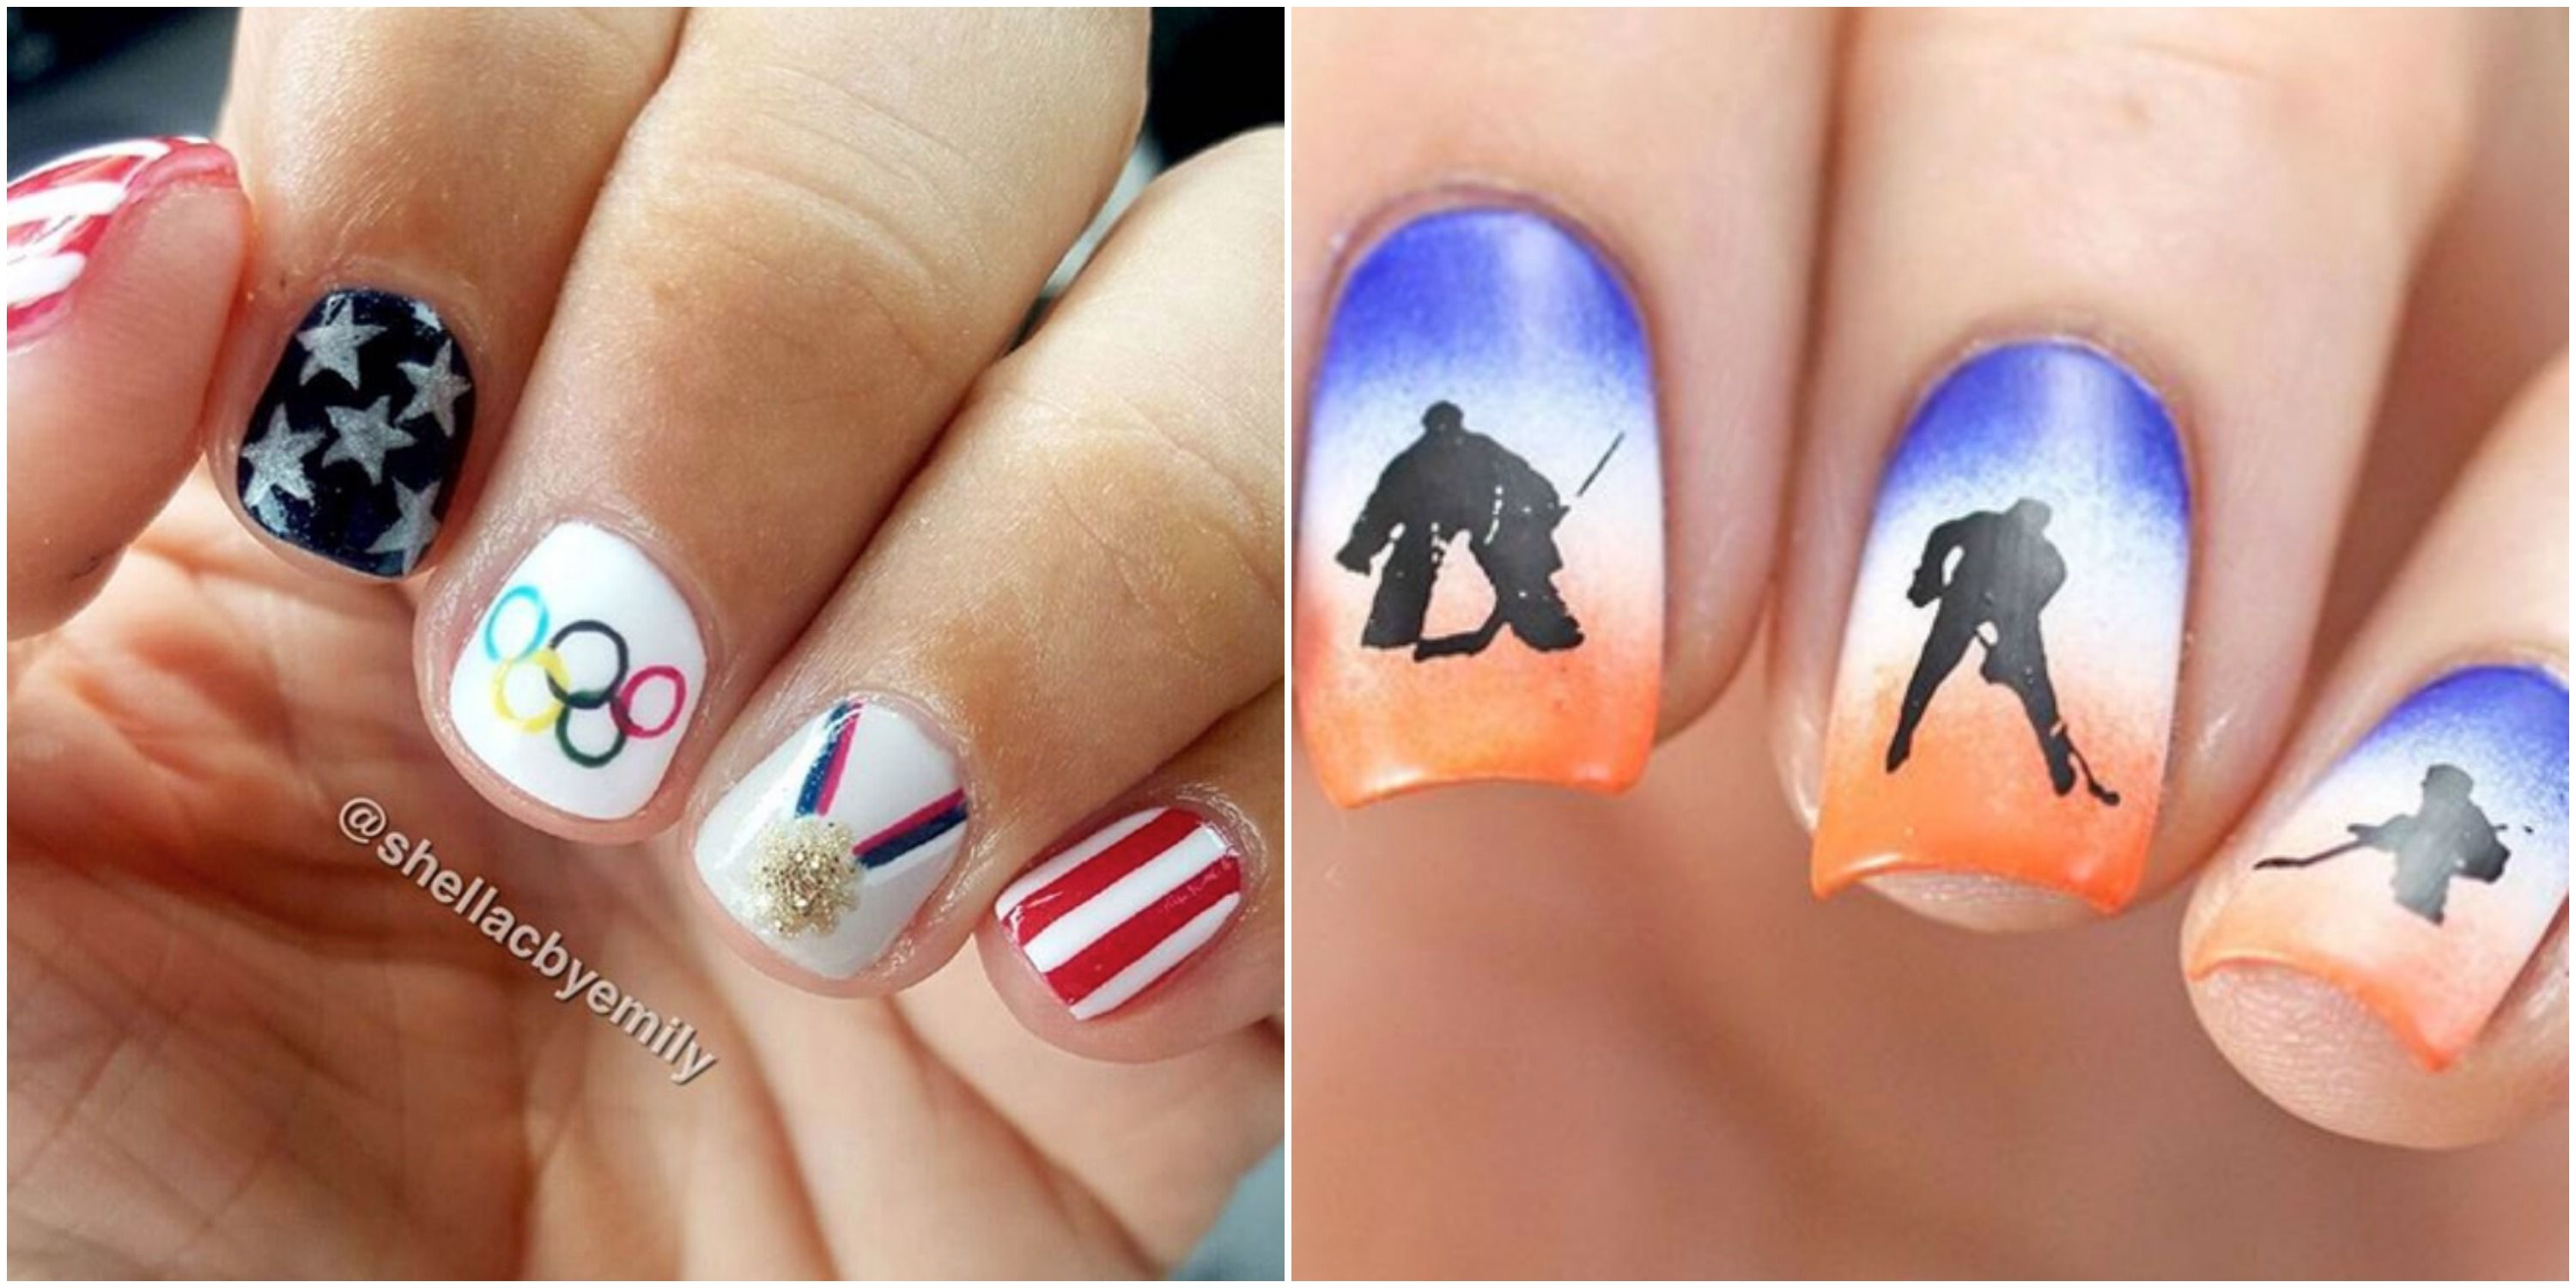 10 Olympic Nail Art Ideas That Deserve a Gold Medal - 2018 Winter ...